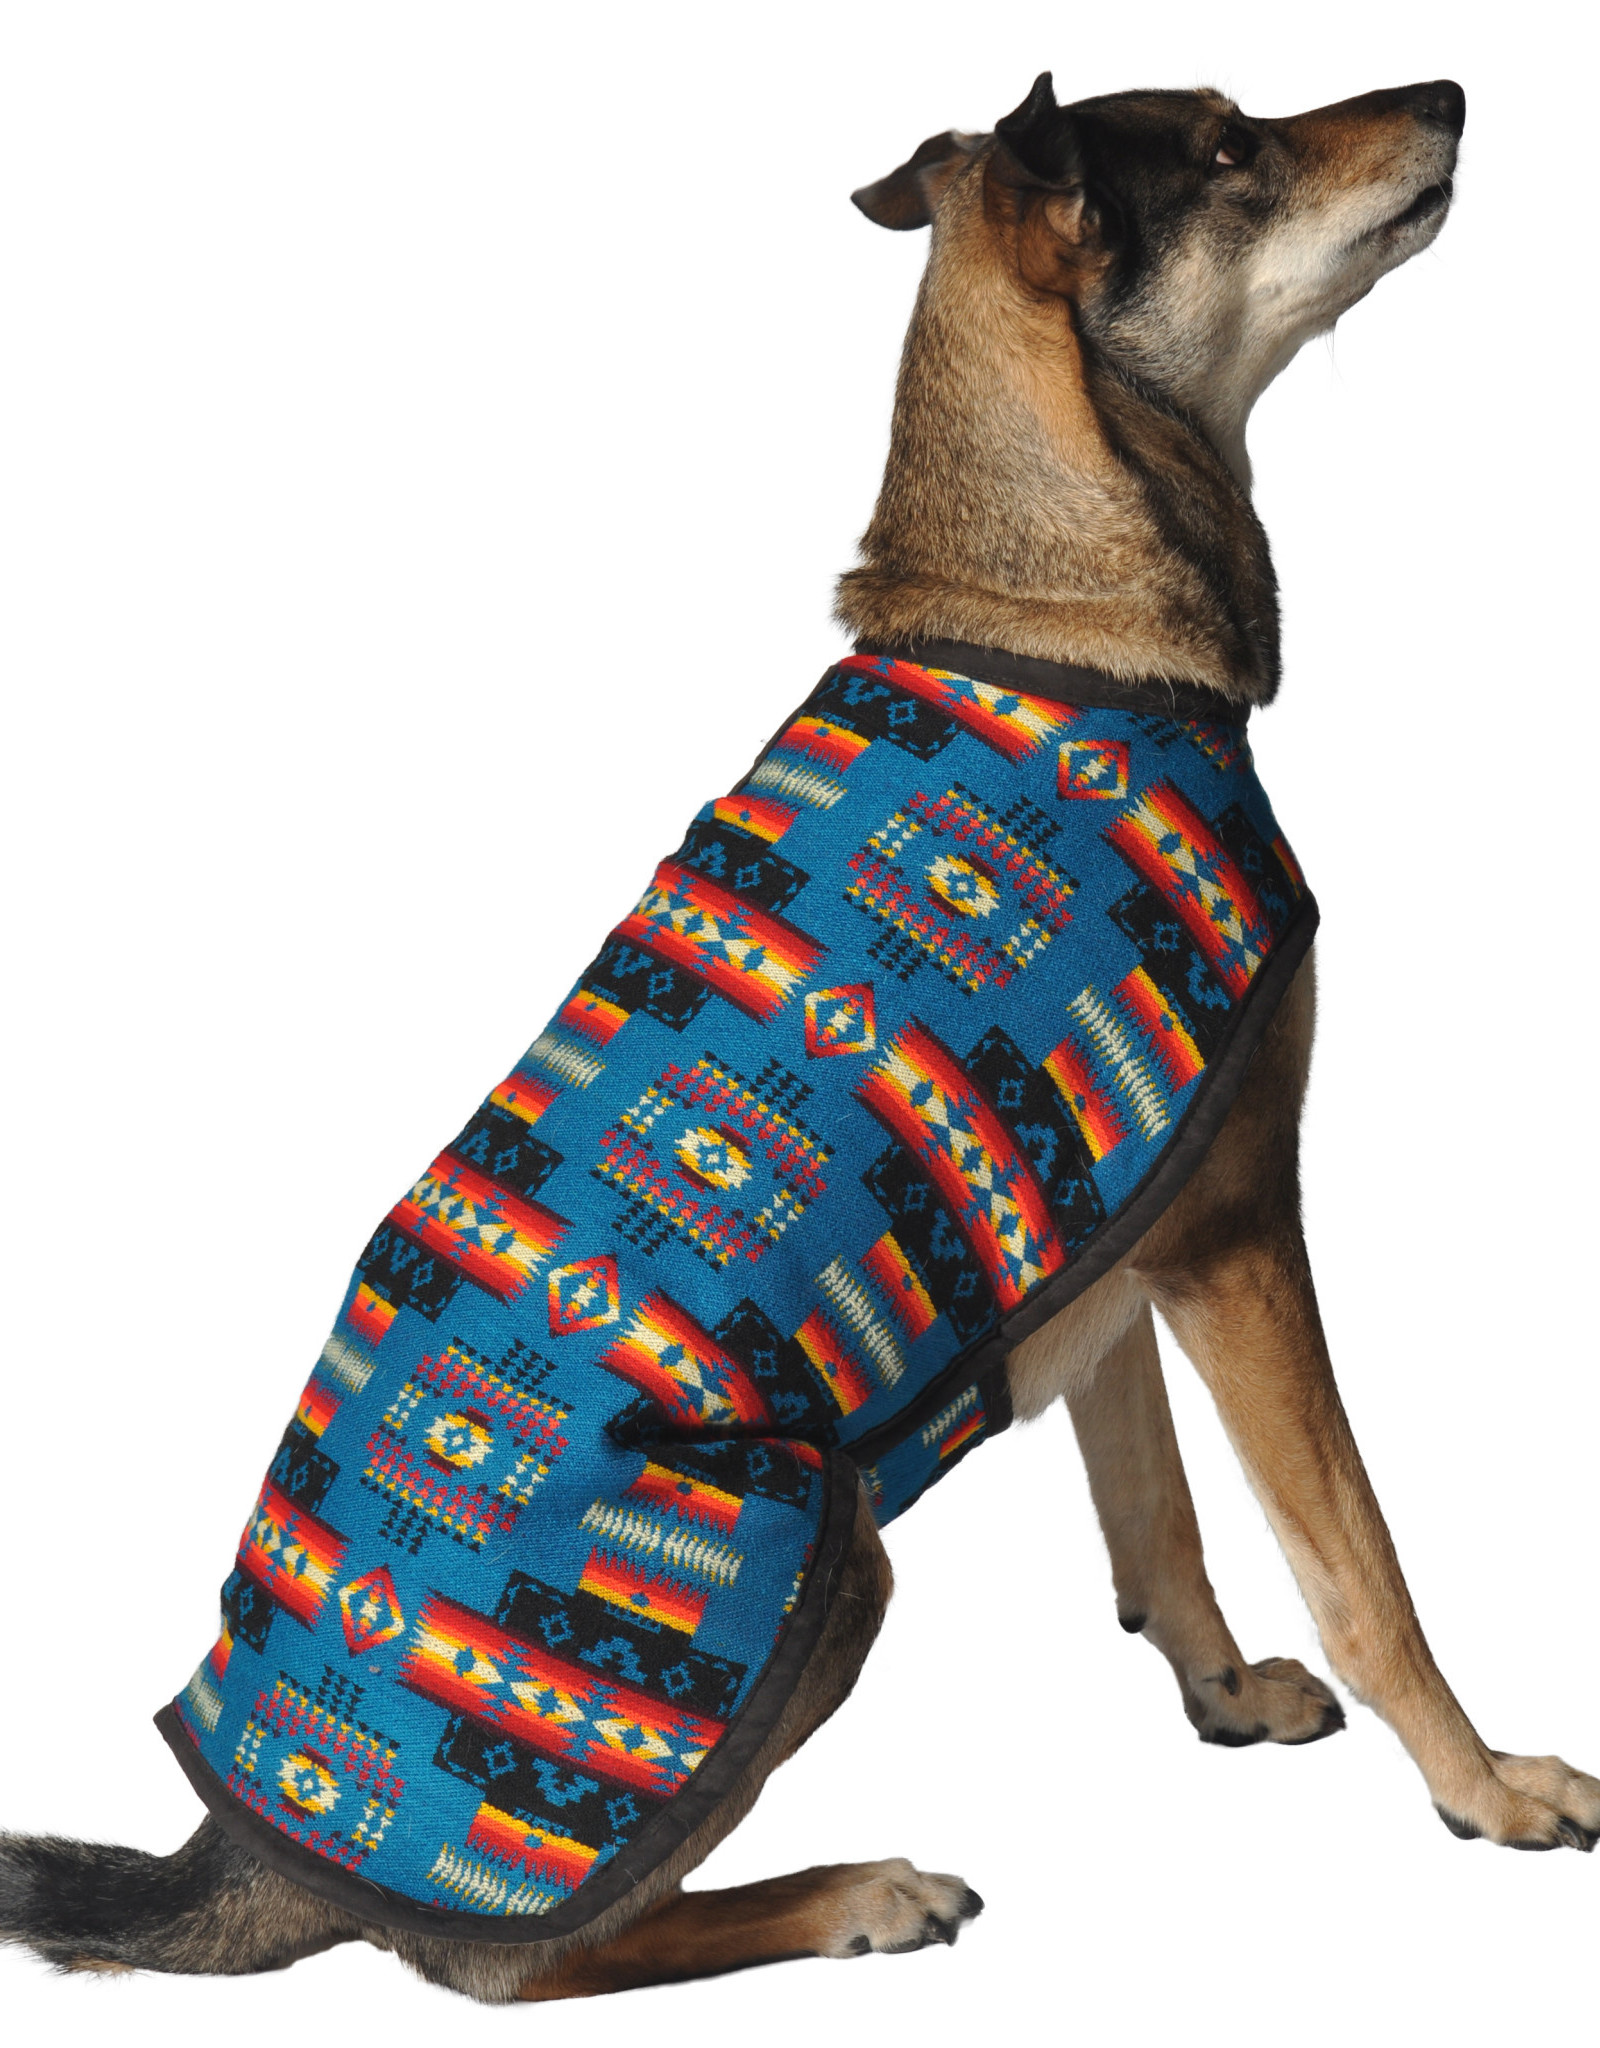 Chilly Dog Chilly Dog Turquoise Southwest Dog Blanket Coat